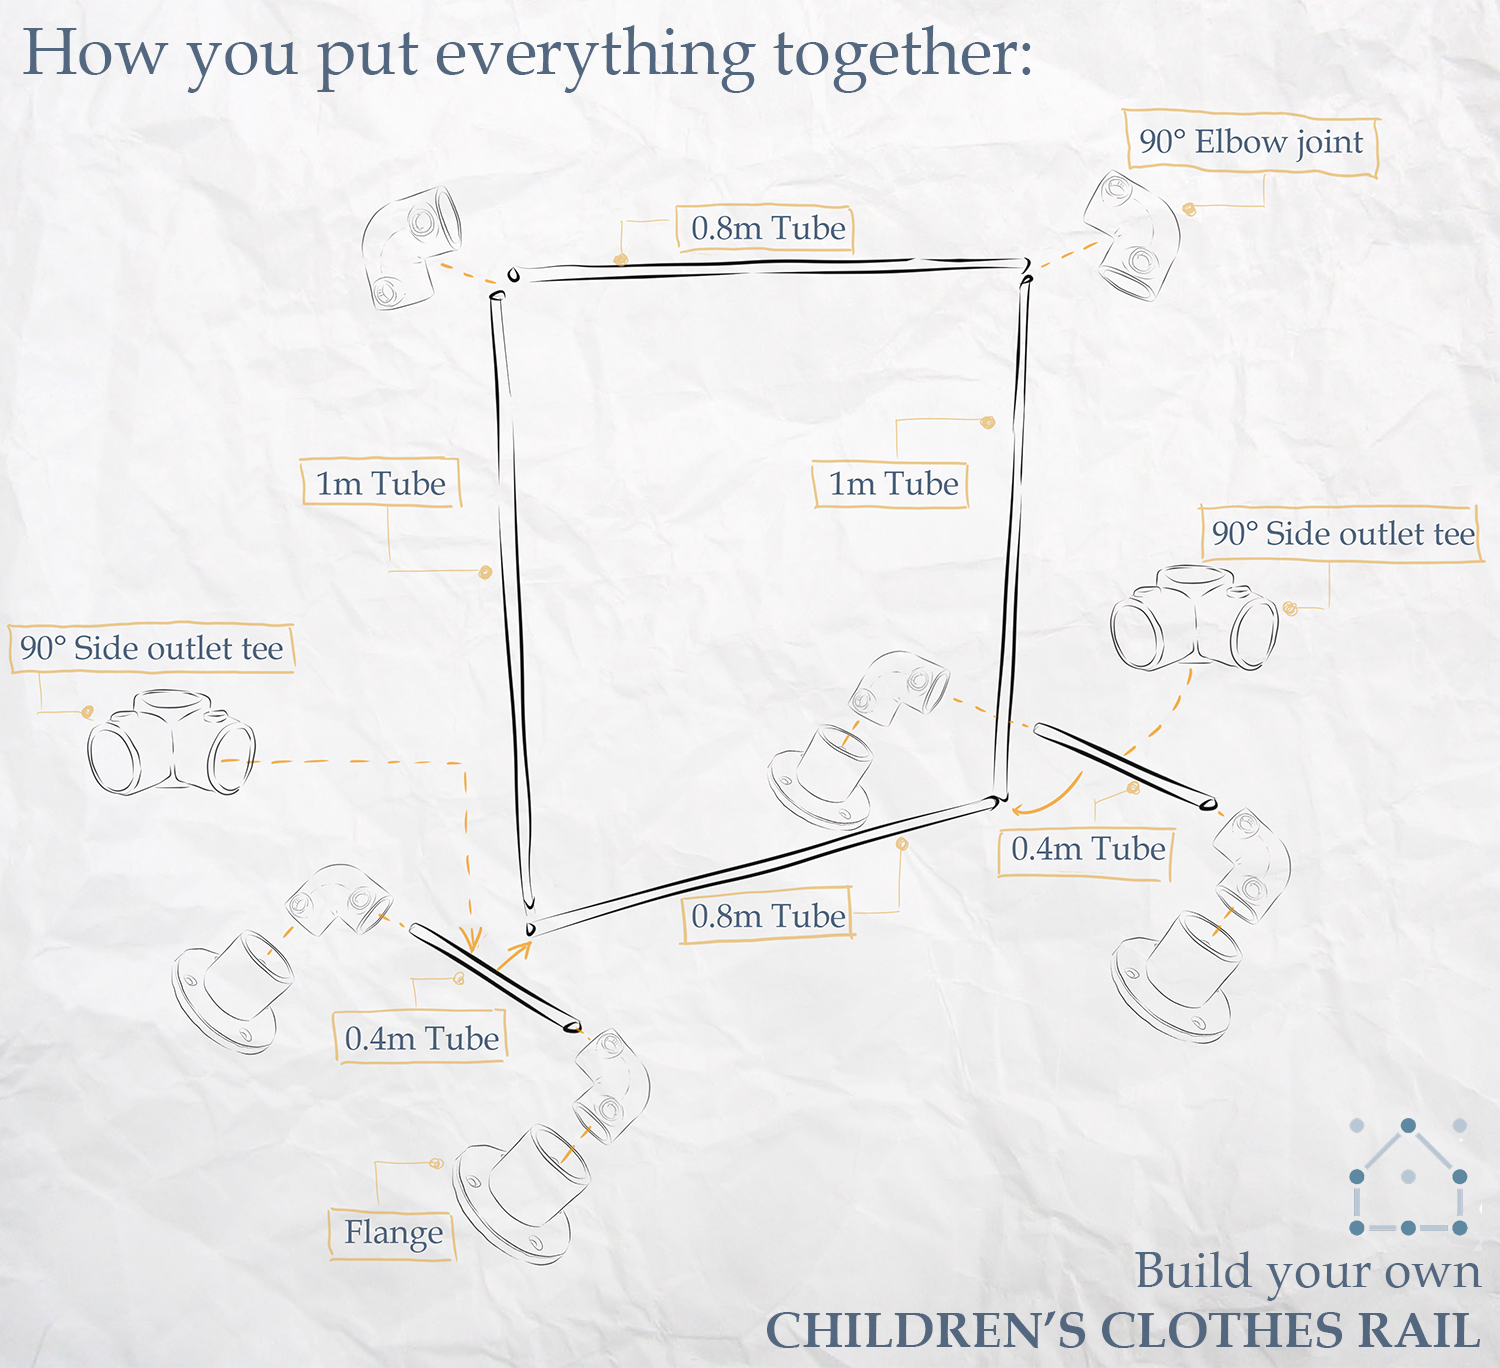 DIY children's clothing rail step-by-step instructions